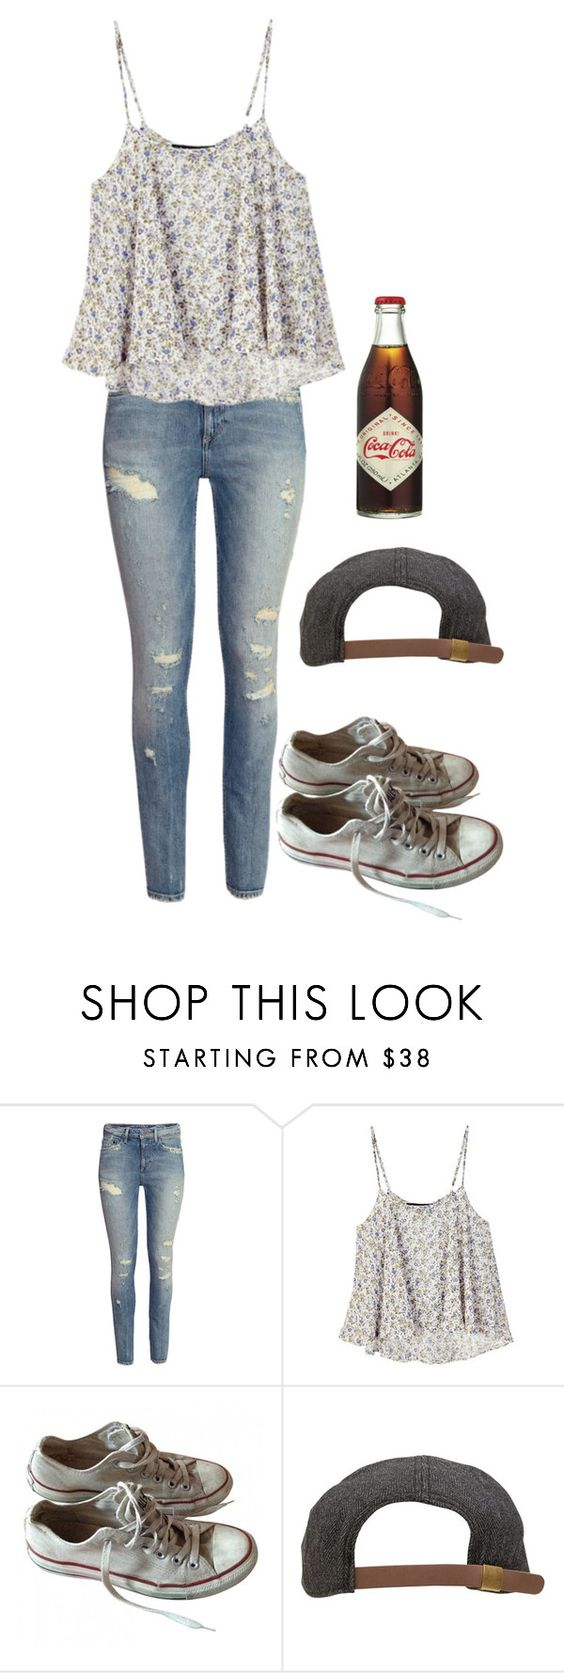 """Sandlot OC Meeting the boys"" by frozenivoryheart ❤ liked on Polyvore featuring H&M, For Love & Lemons, Converse and Goorin"